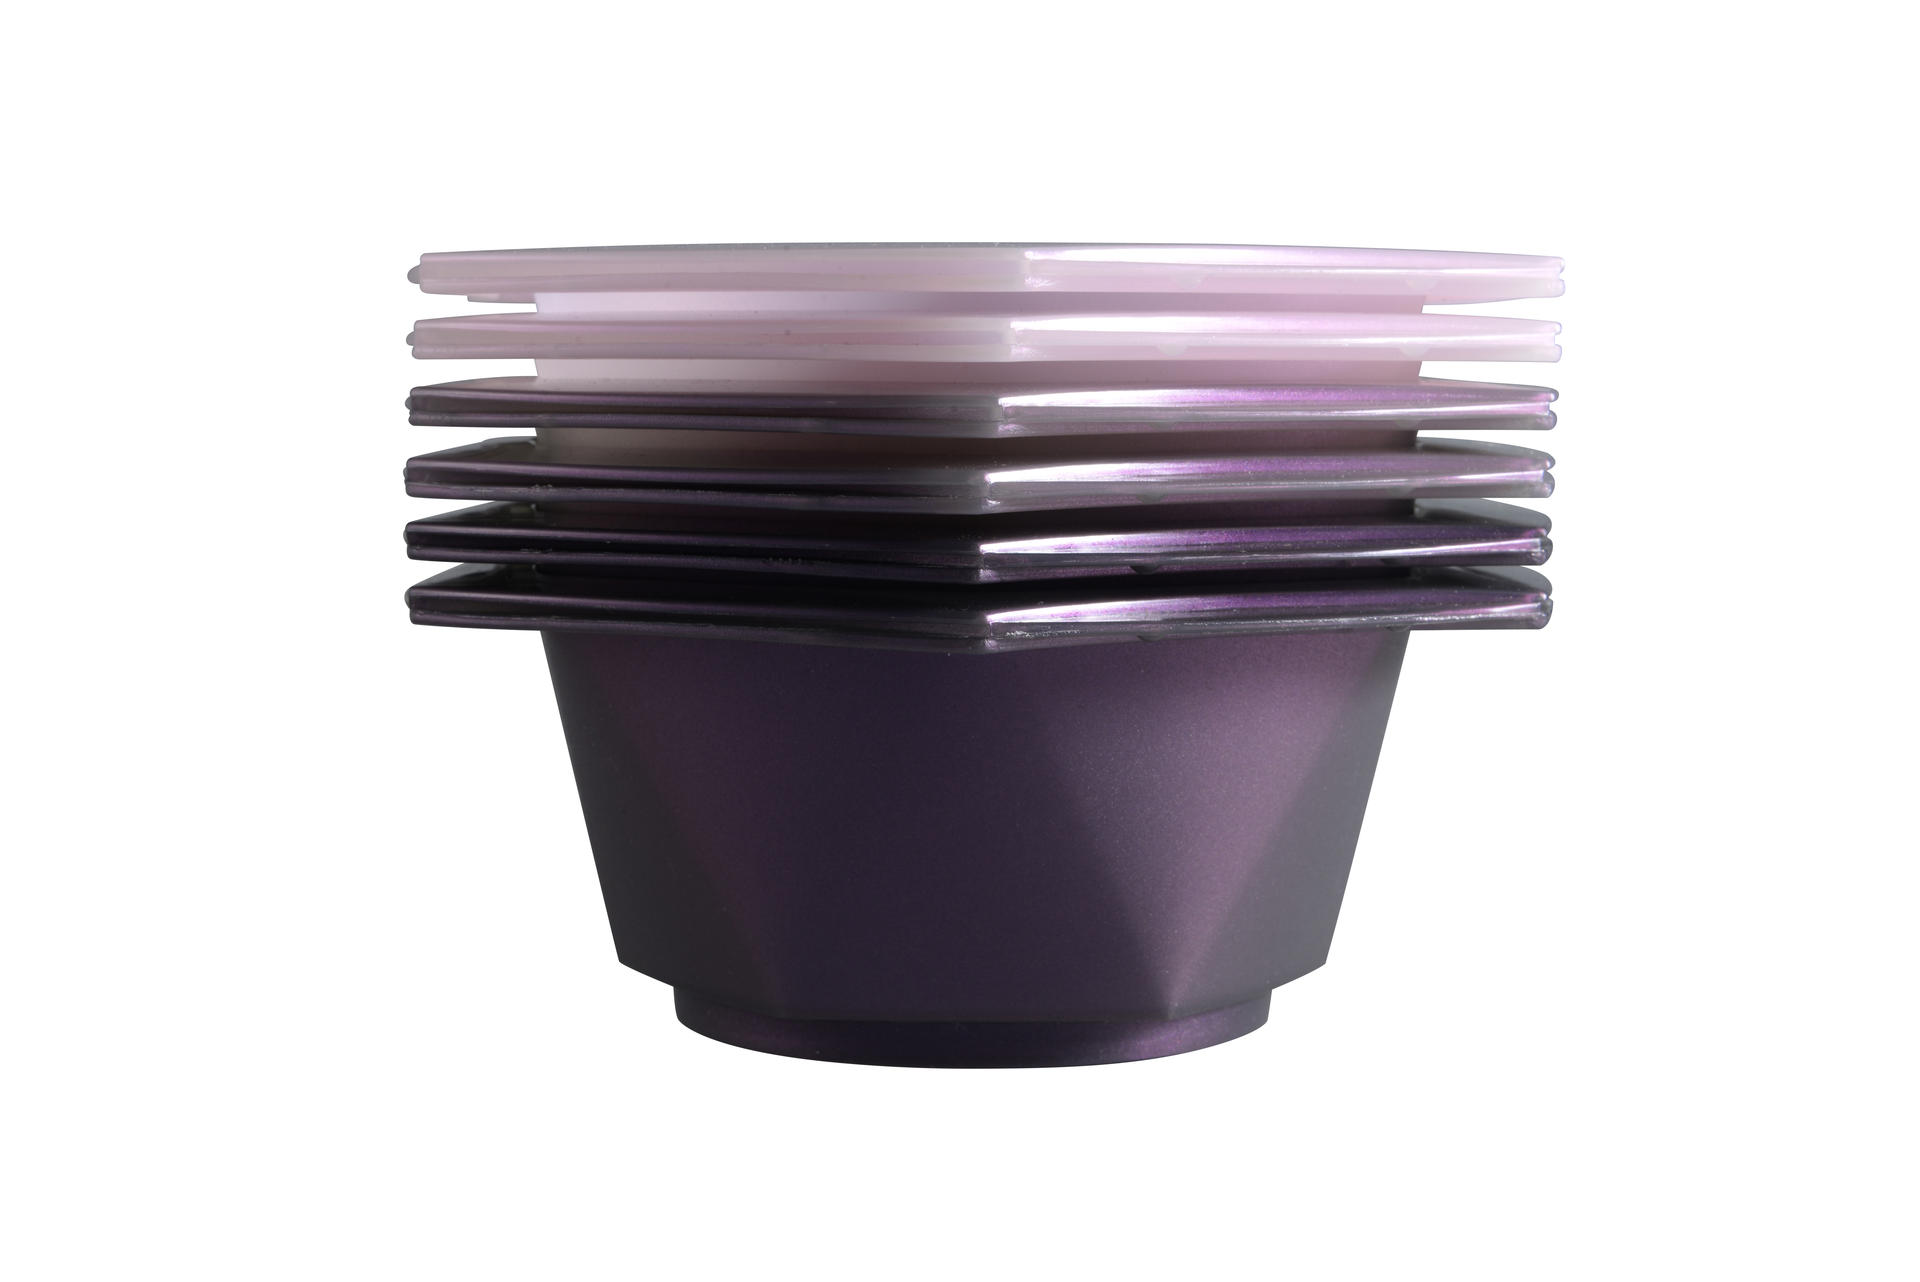 Wholesale colorful salon styling tint coloring tool classic mixing bowl for hair care